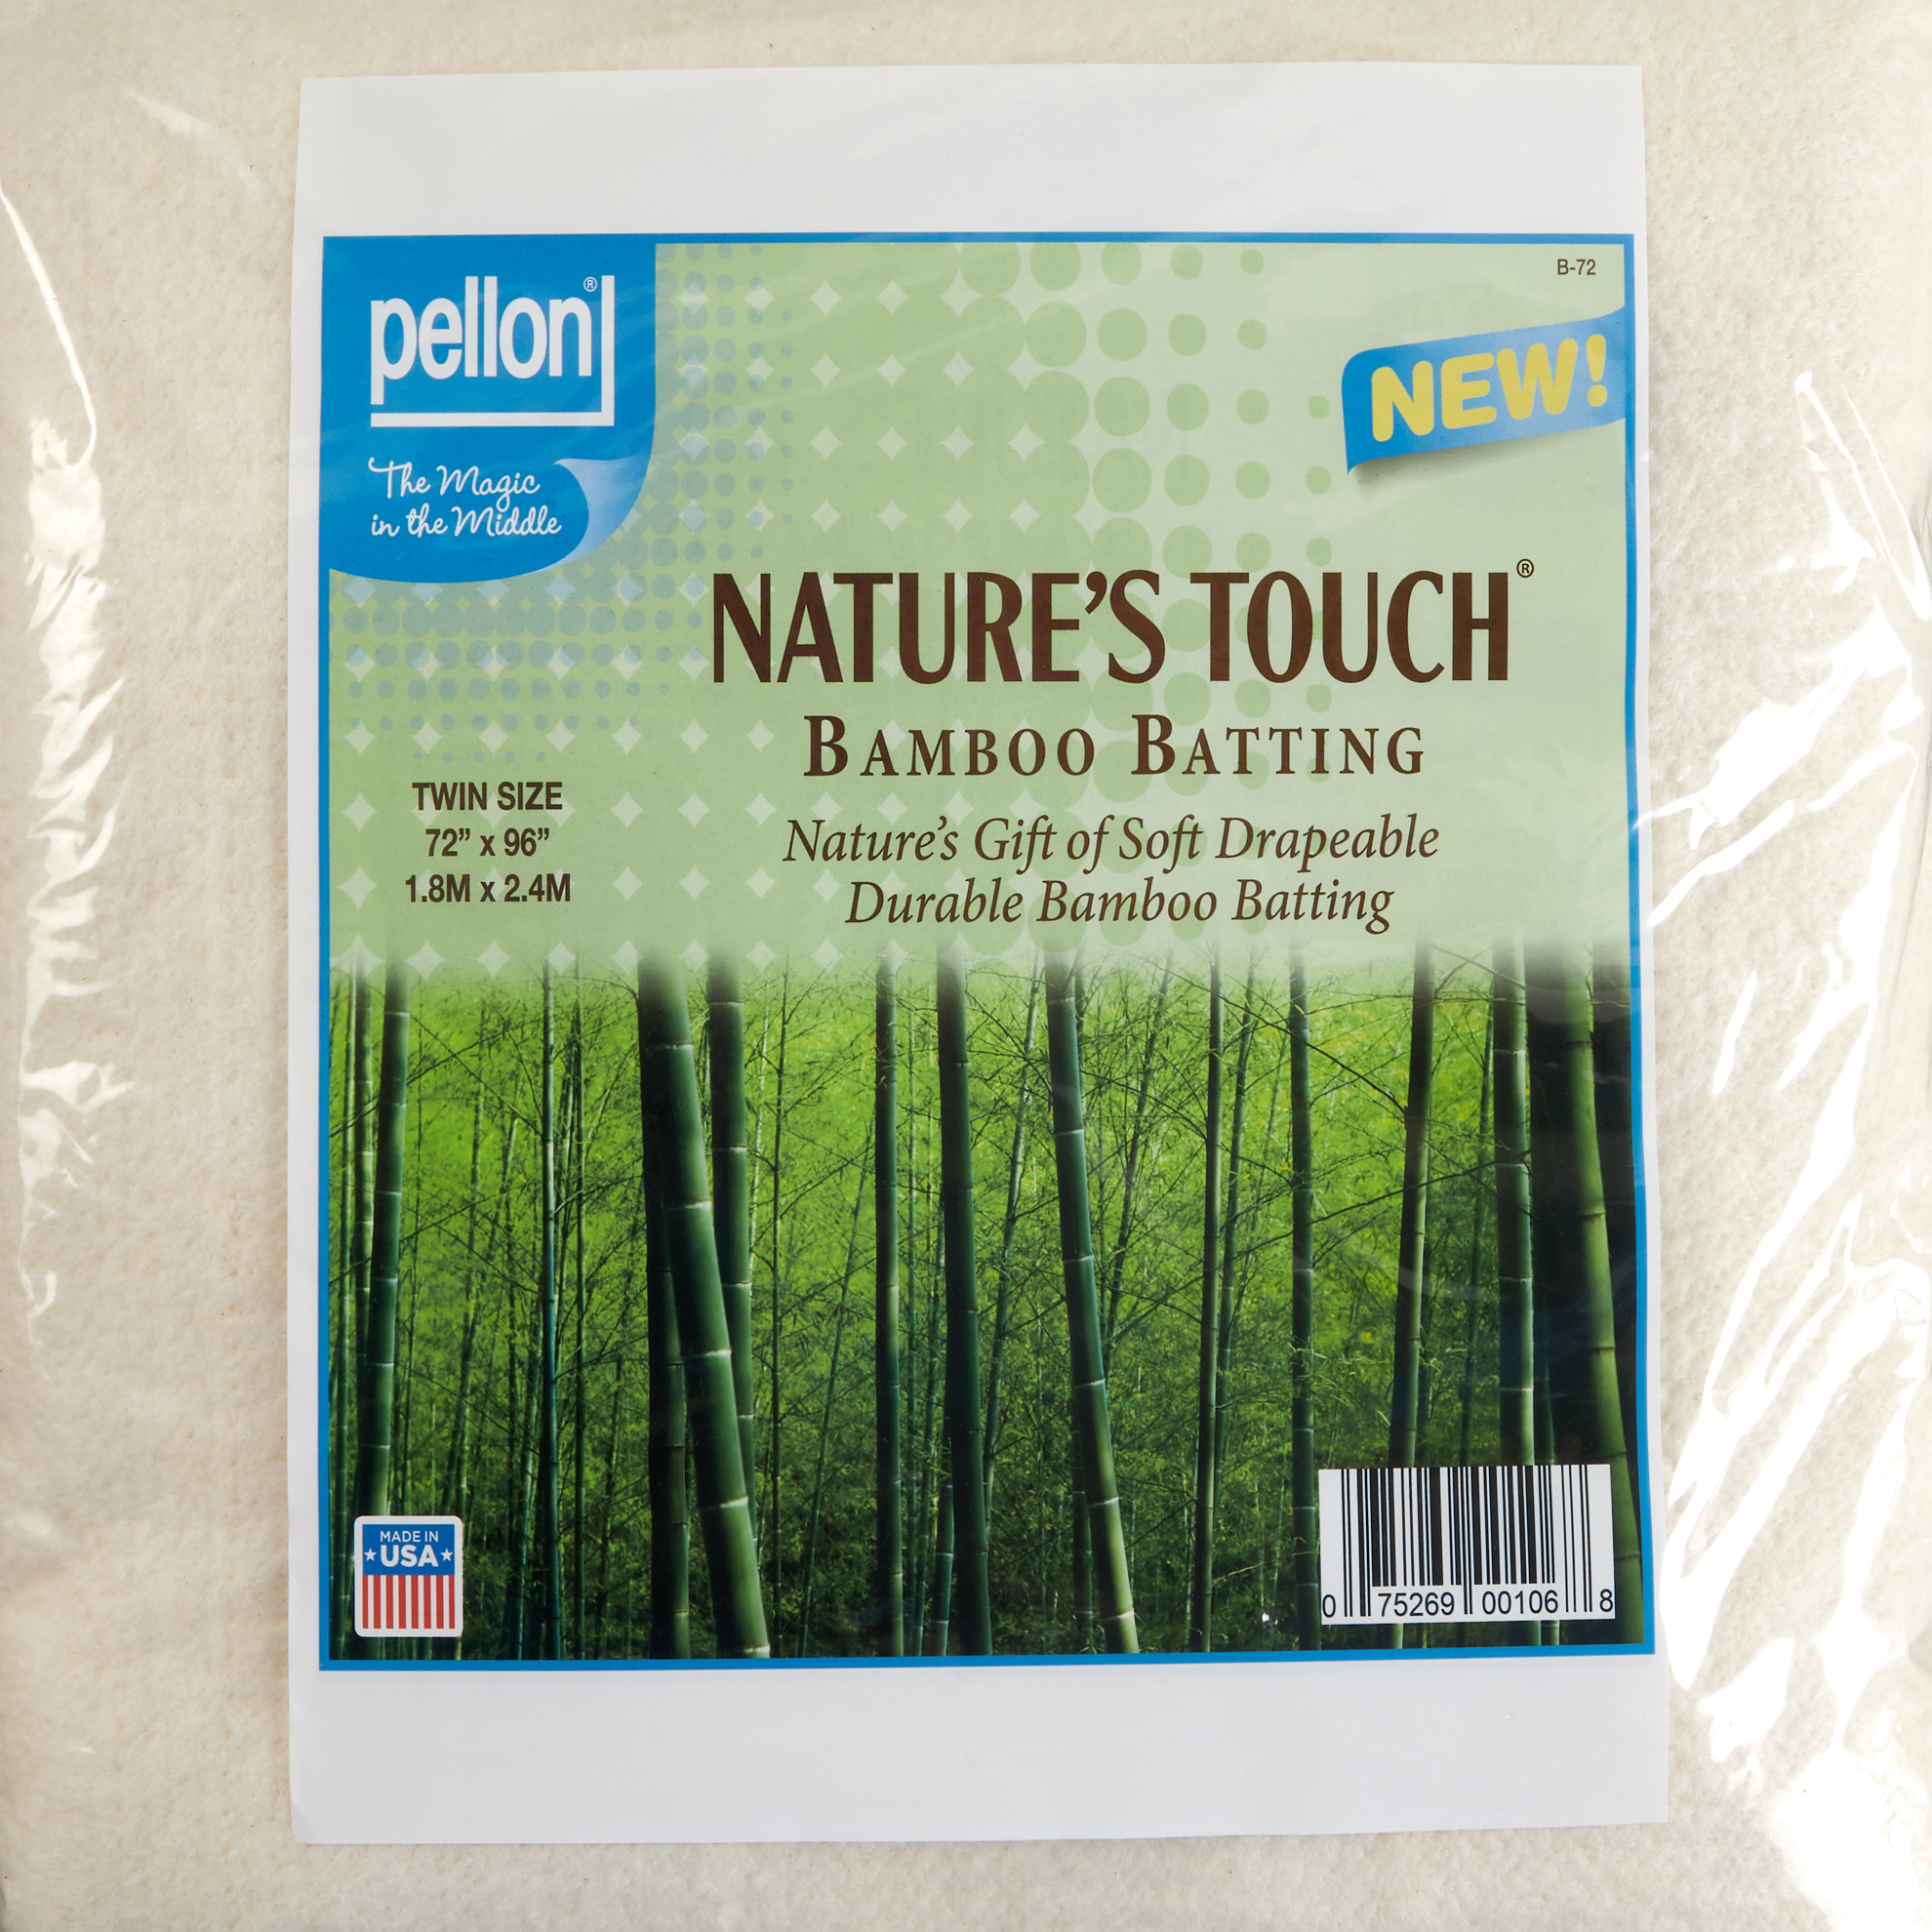 Pellon Bamboo Batting Twin 72'' X 96'' by PCP in USA